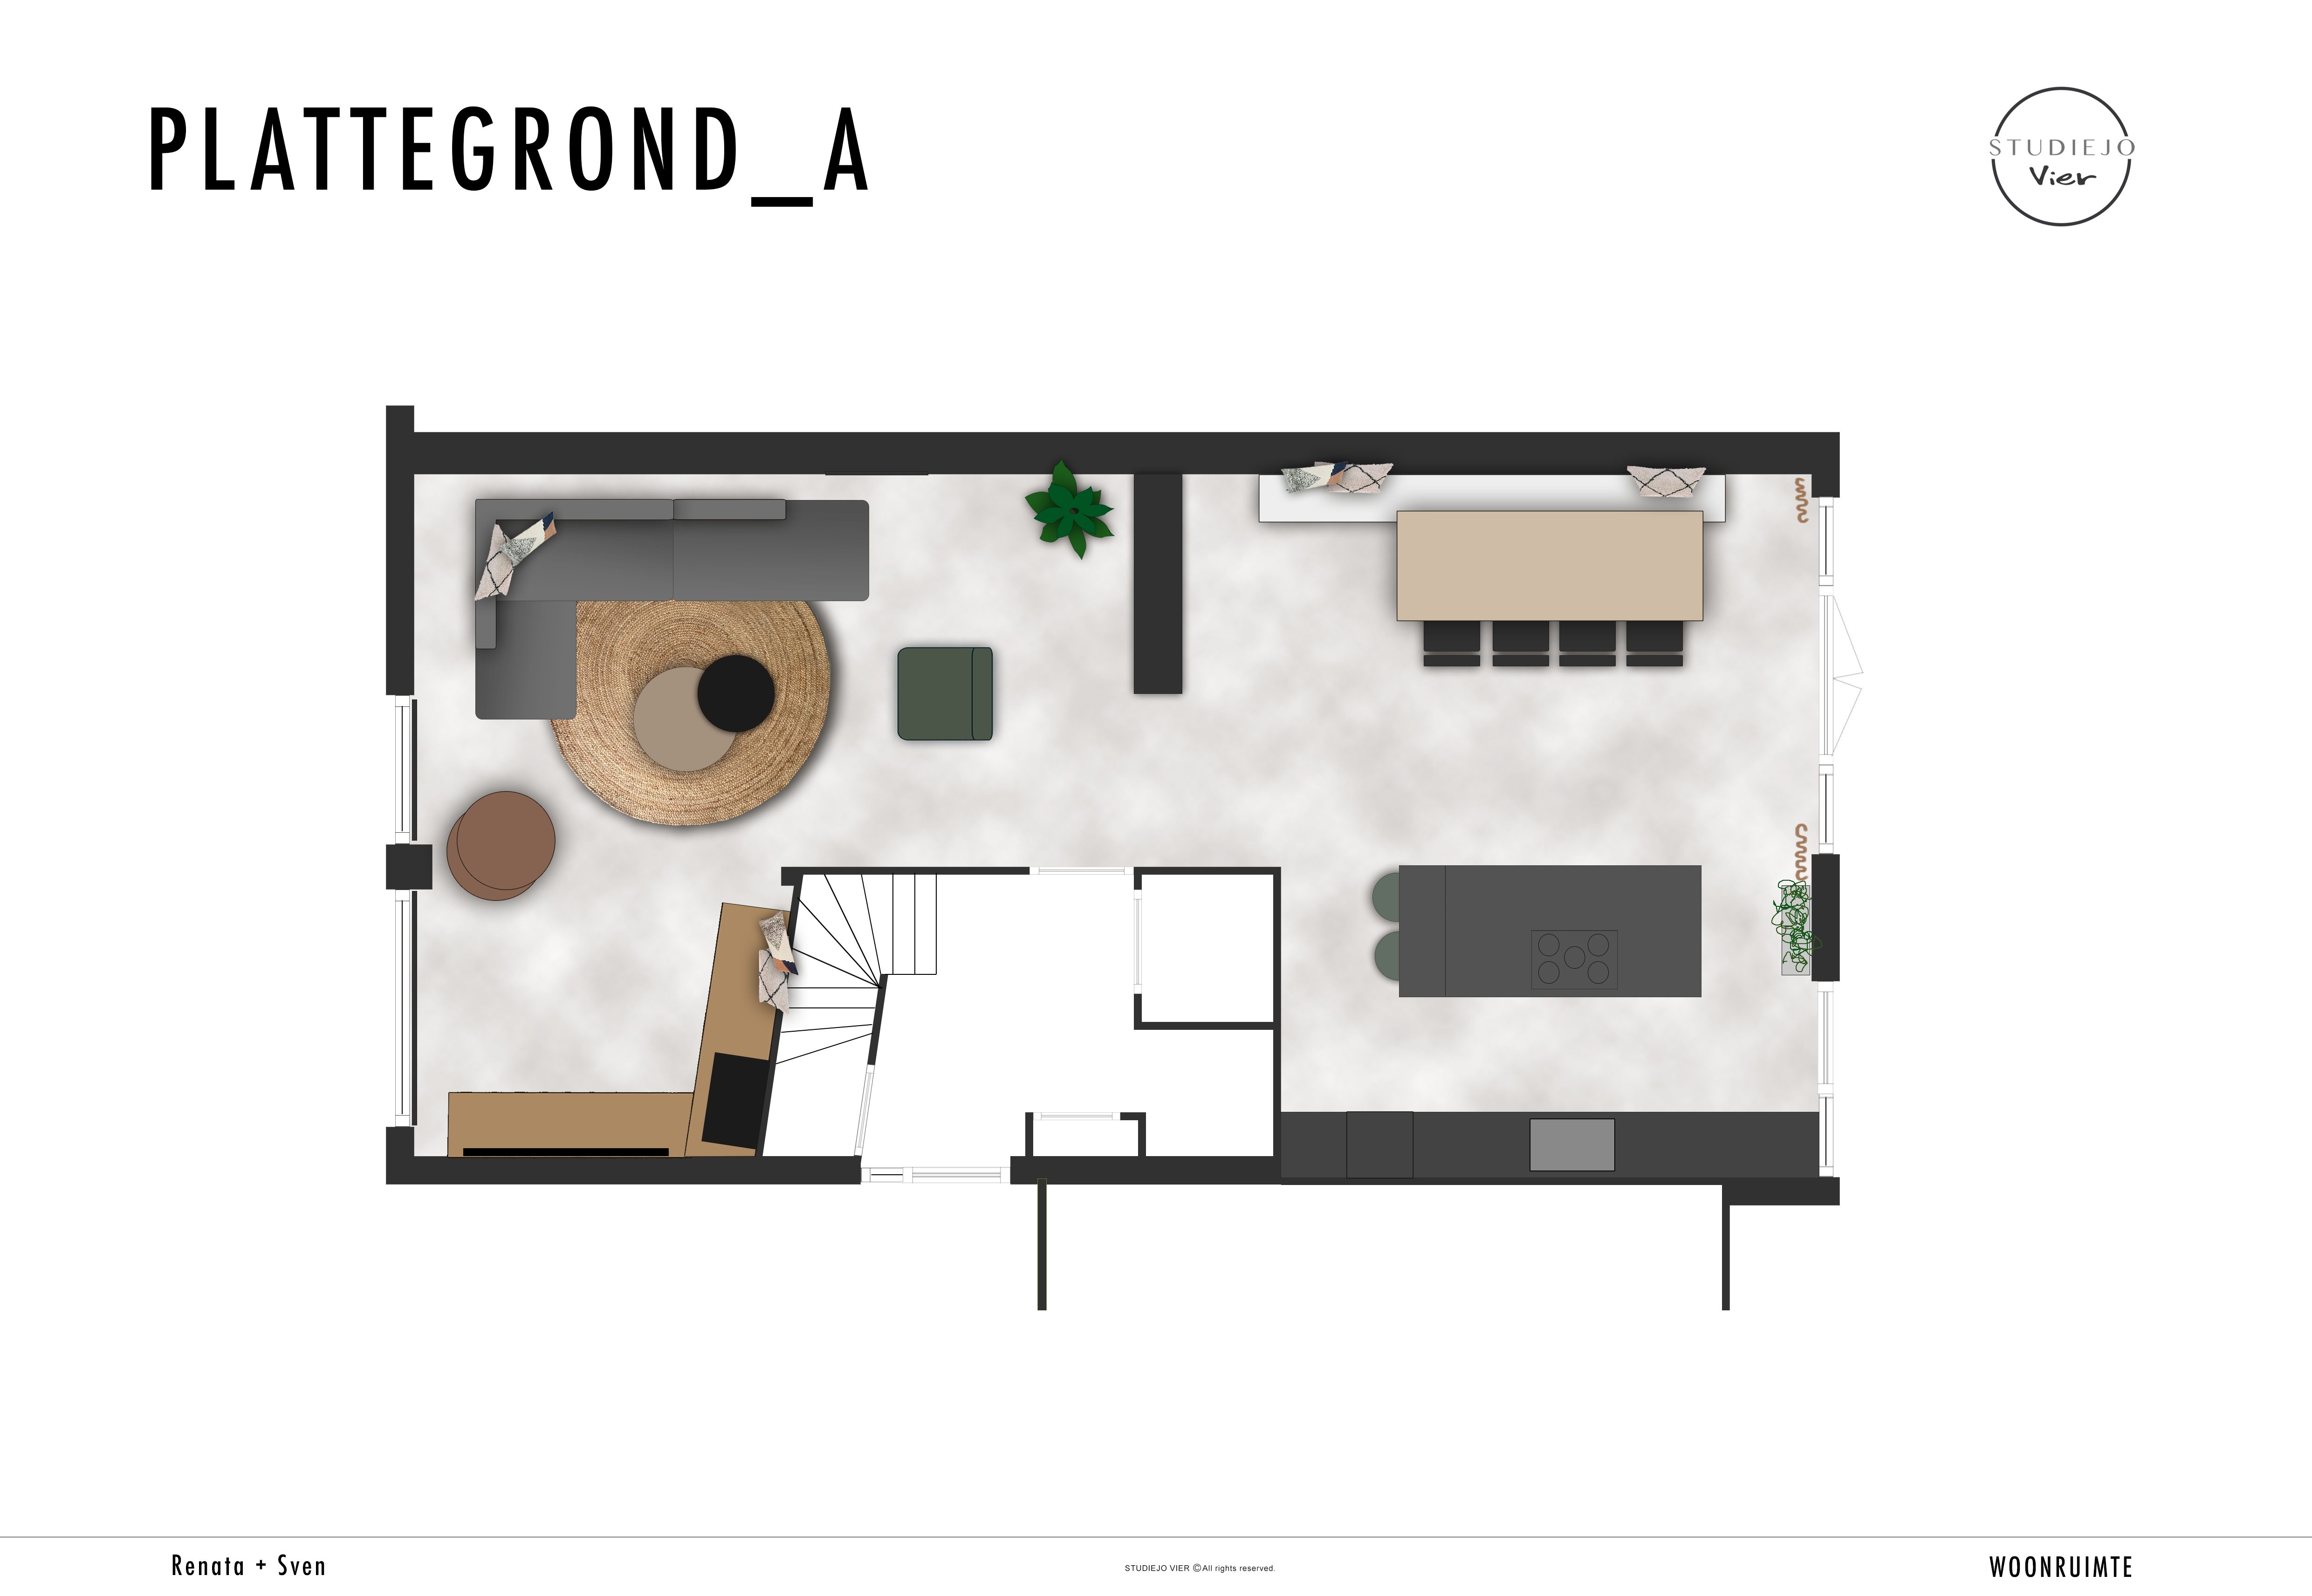 Plattegrond_A_ R+S